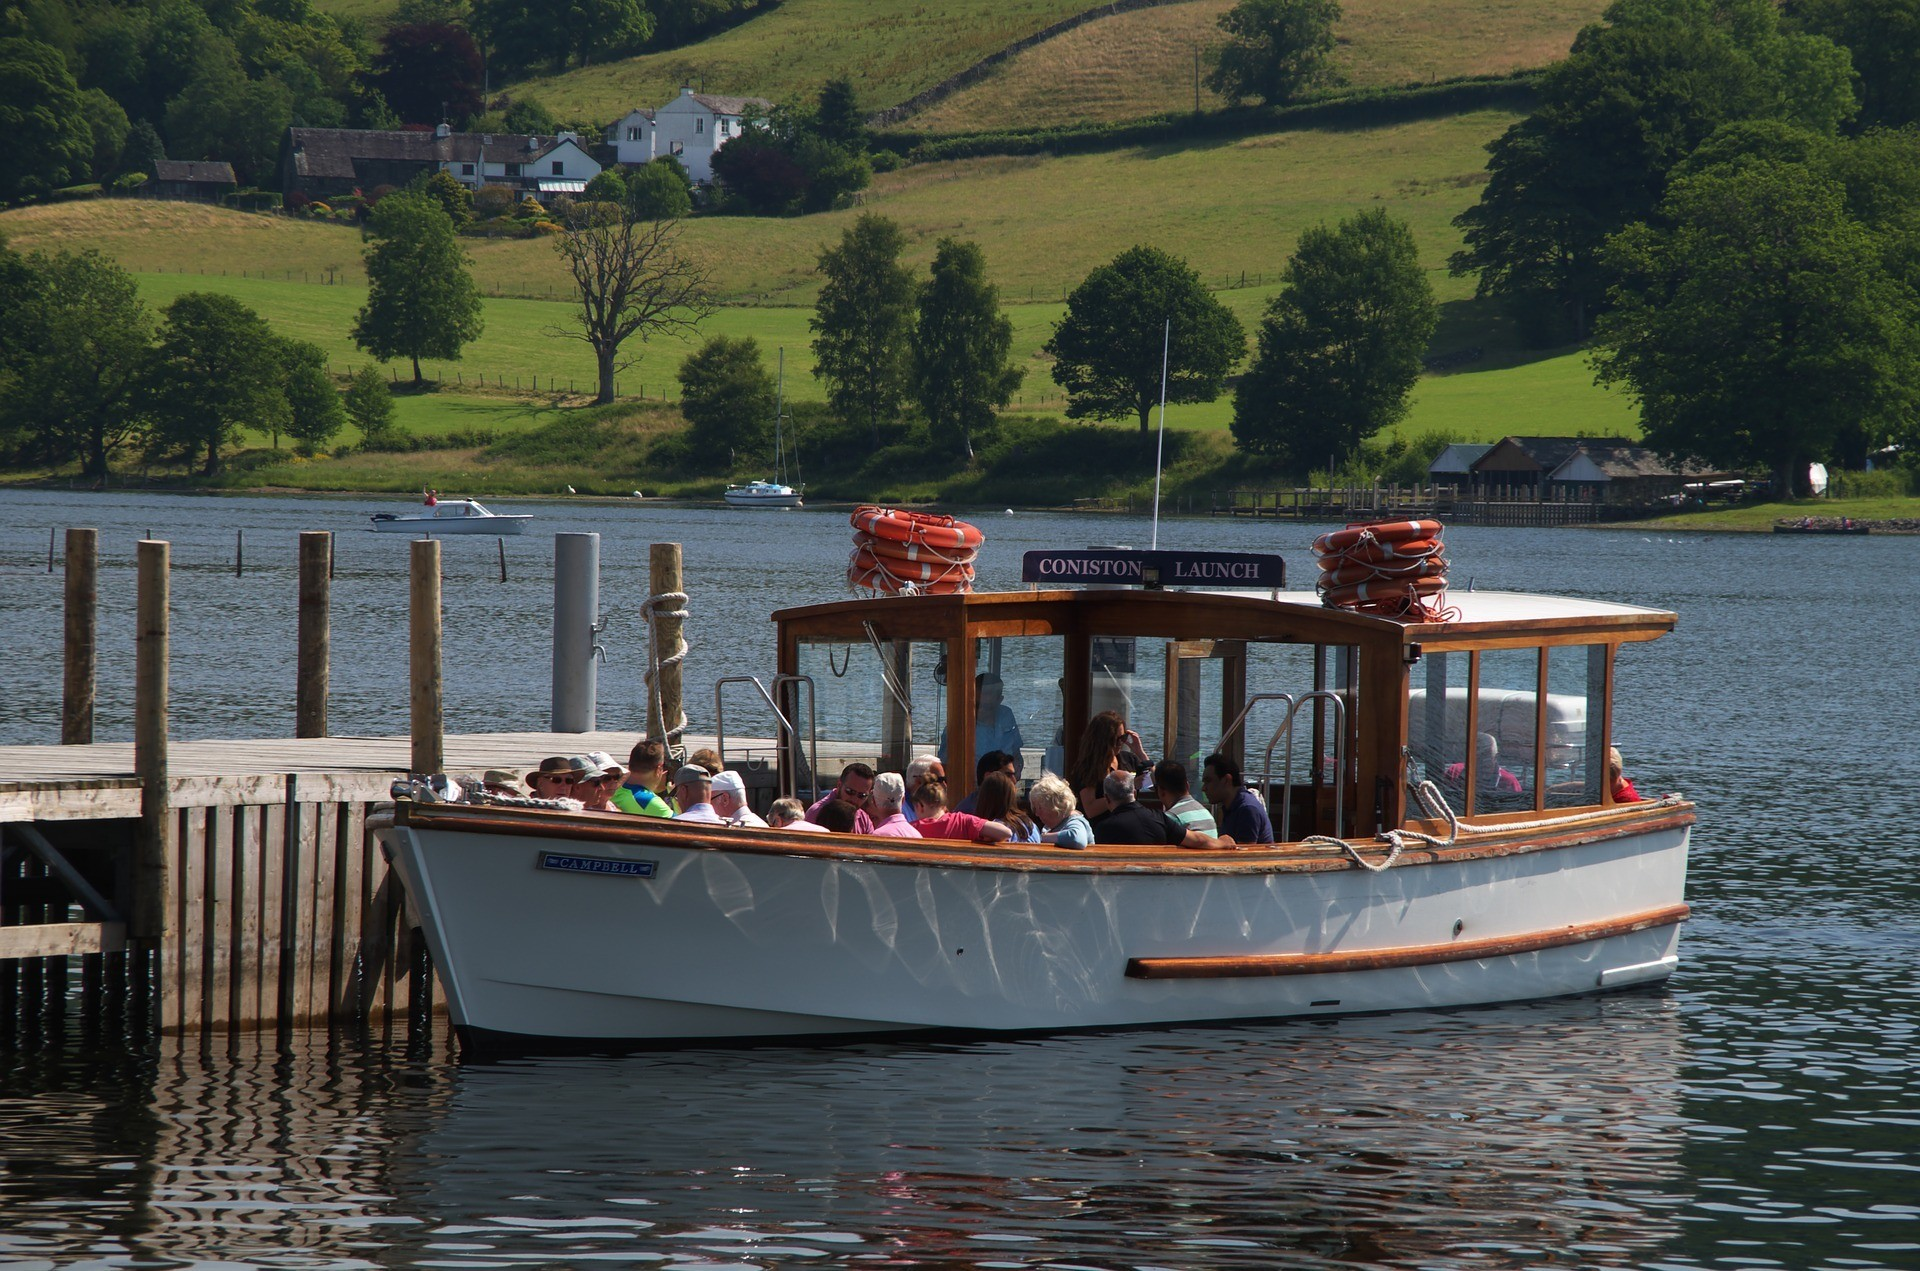 Bowness on Windermere, Lake District